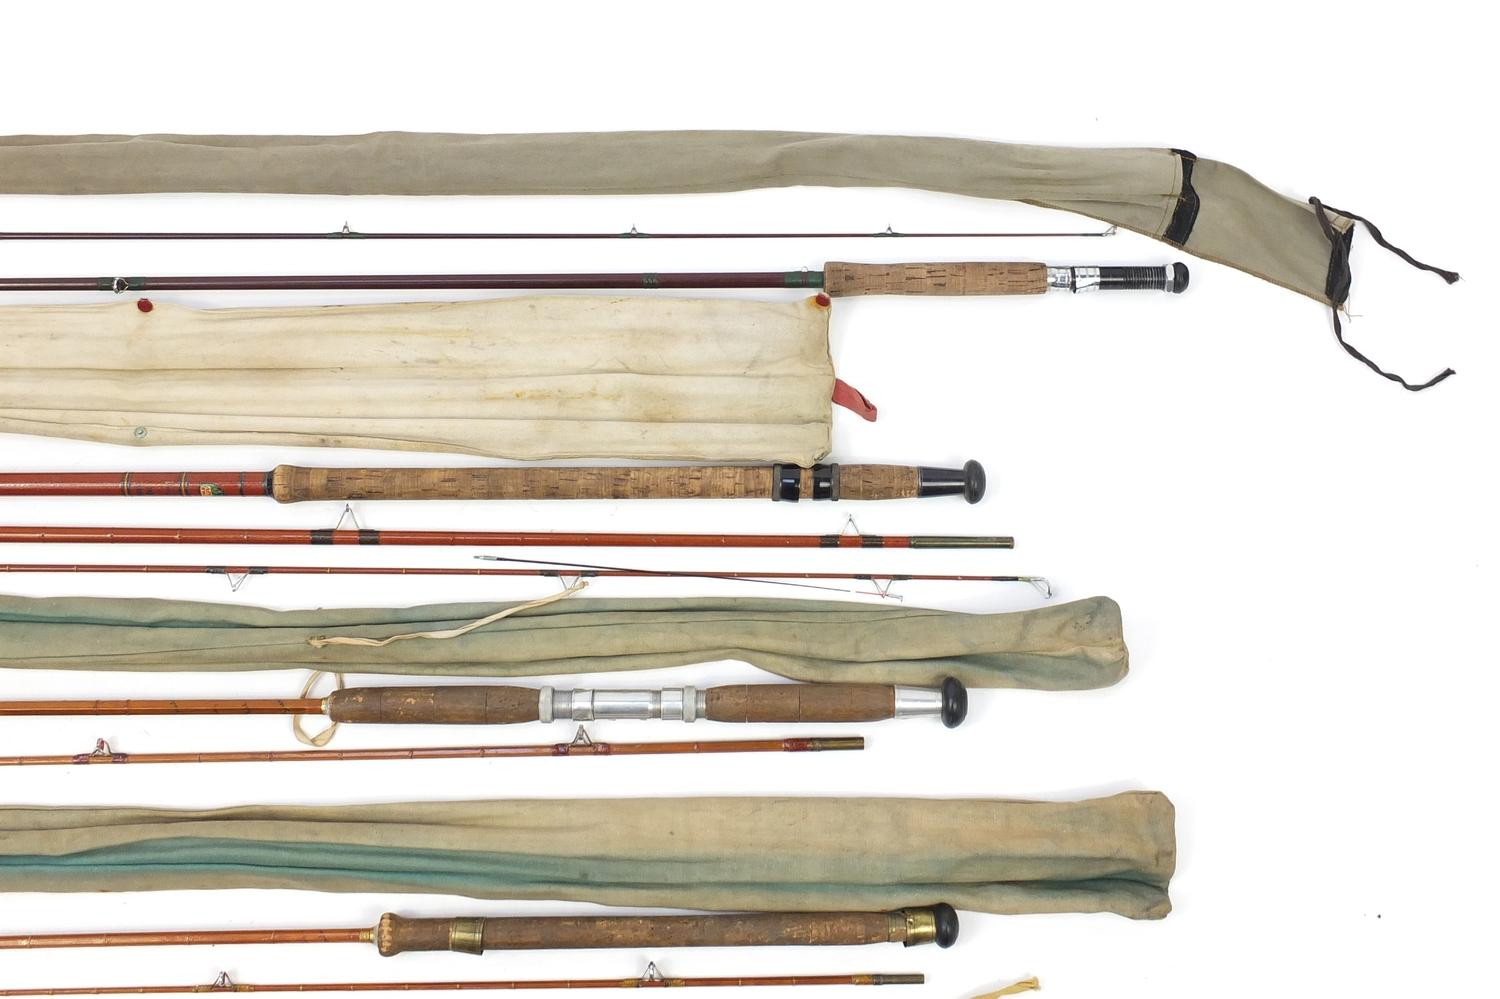 Lot 116 - Five vintage fishing rods including two Hardy split cane spinning rods, Allcocks Little Gem split